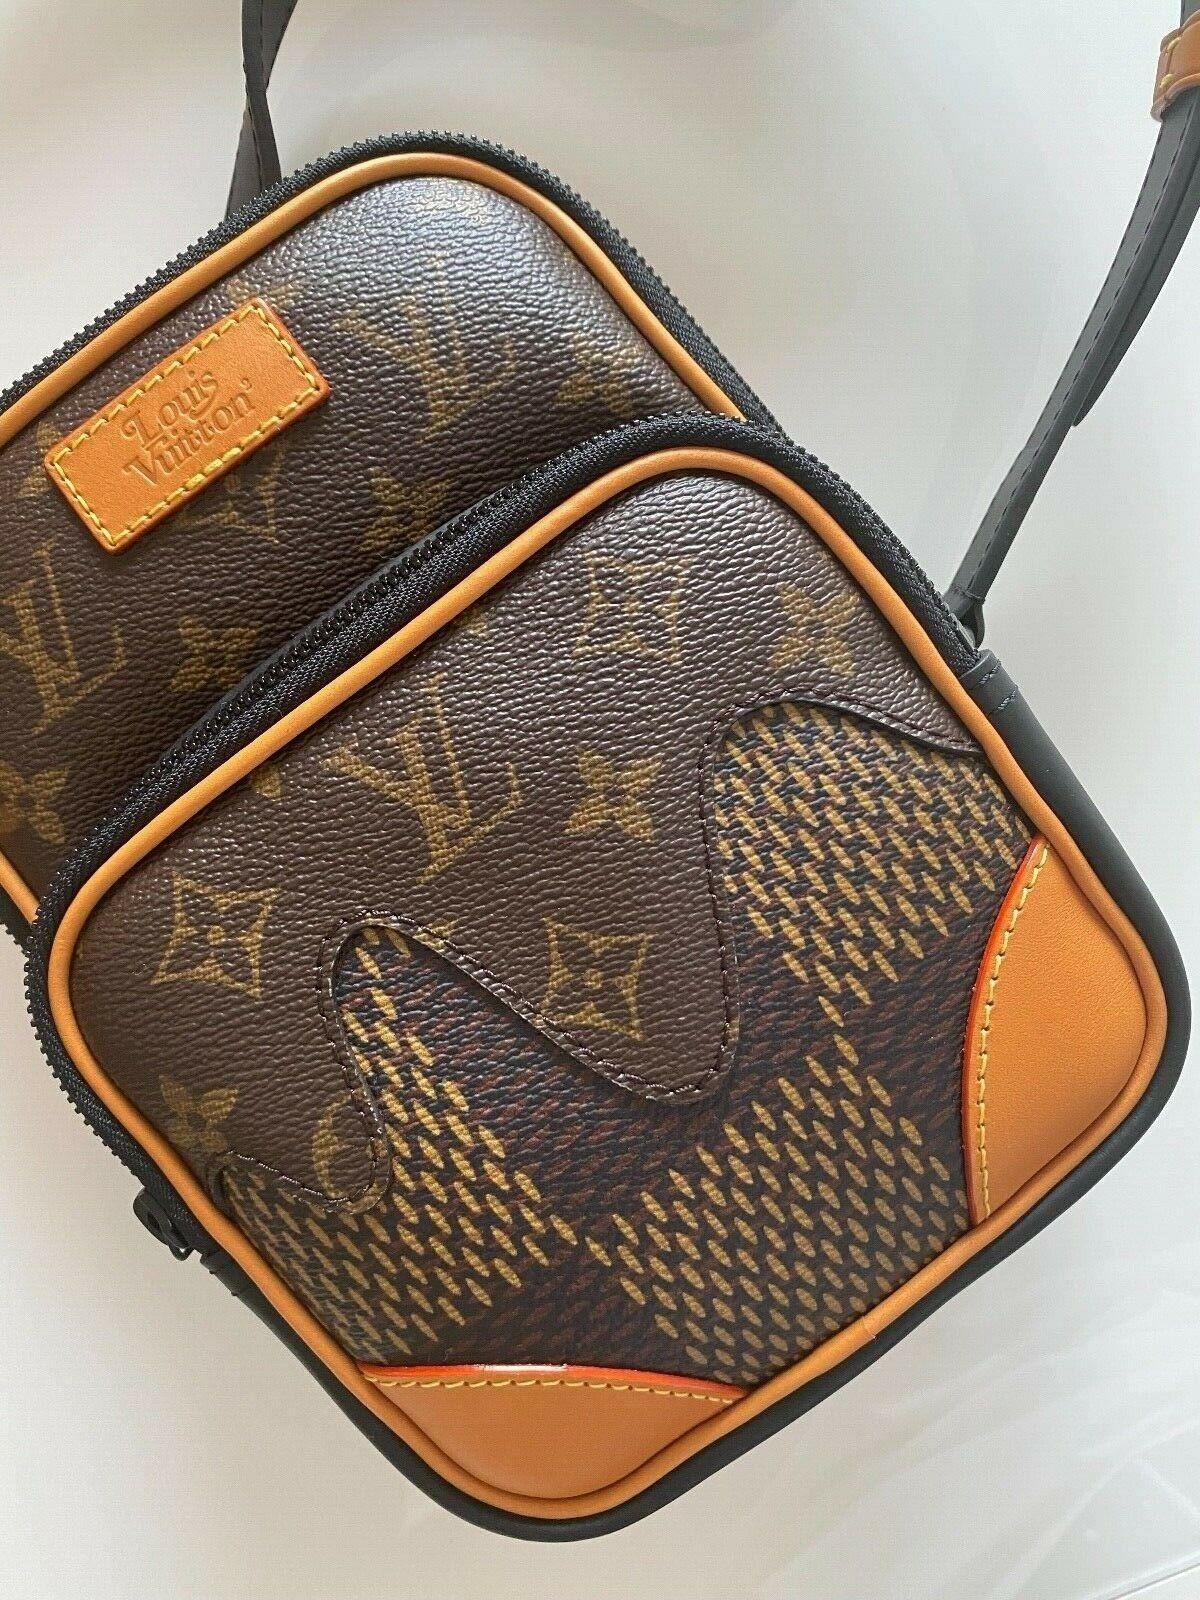 Louis Vuitton x NIGO Amazone Messenger Bag Shoulder N40357 wholesale luxury bags